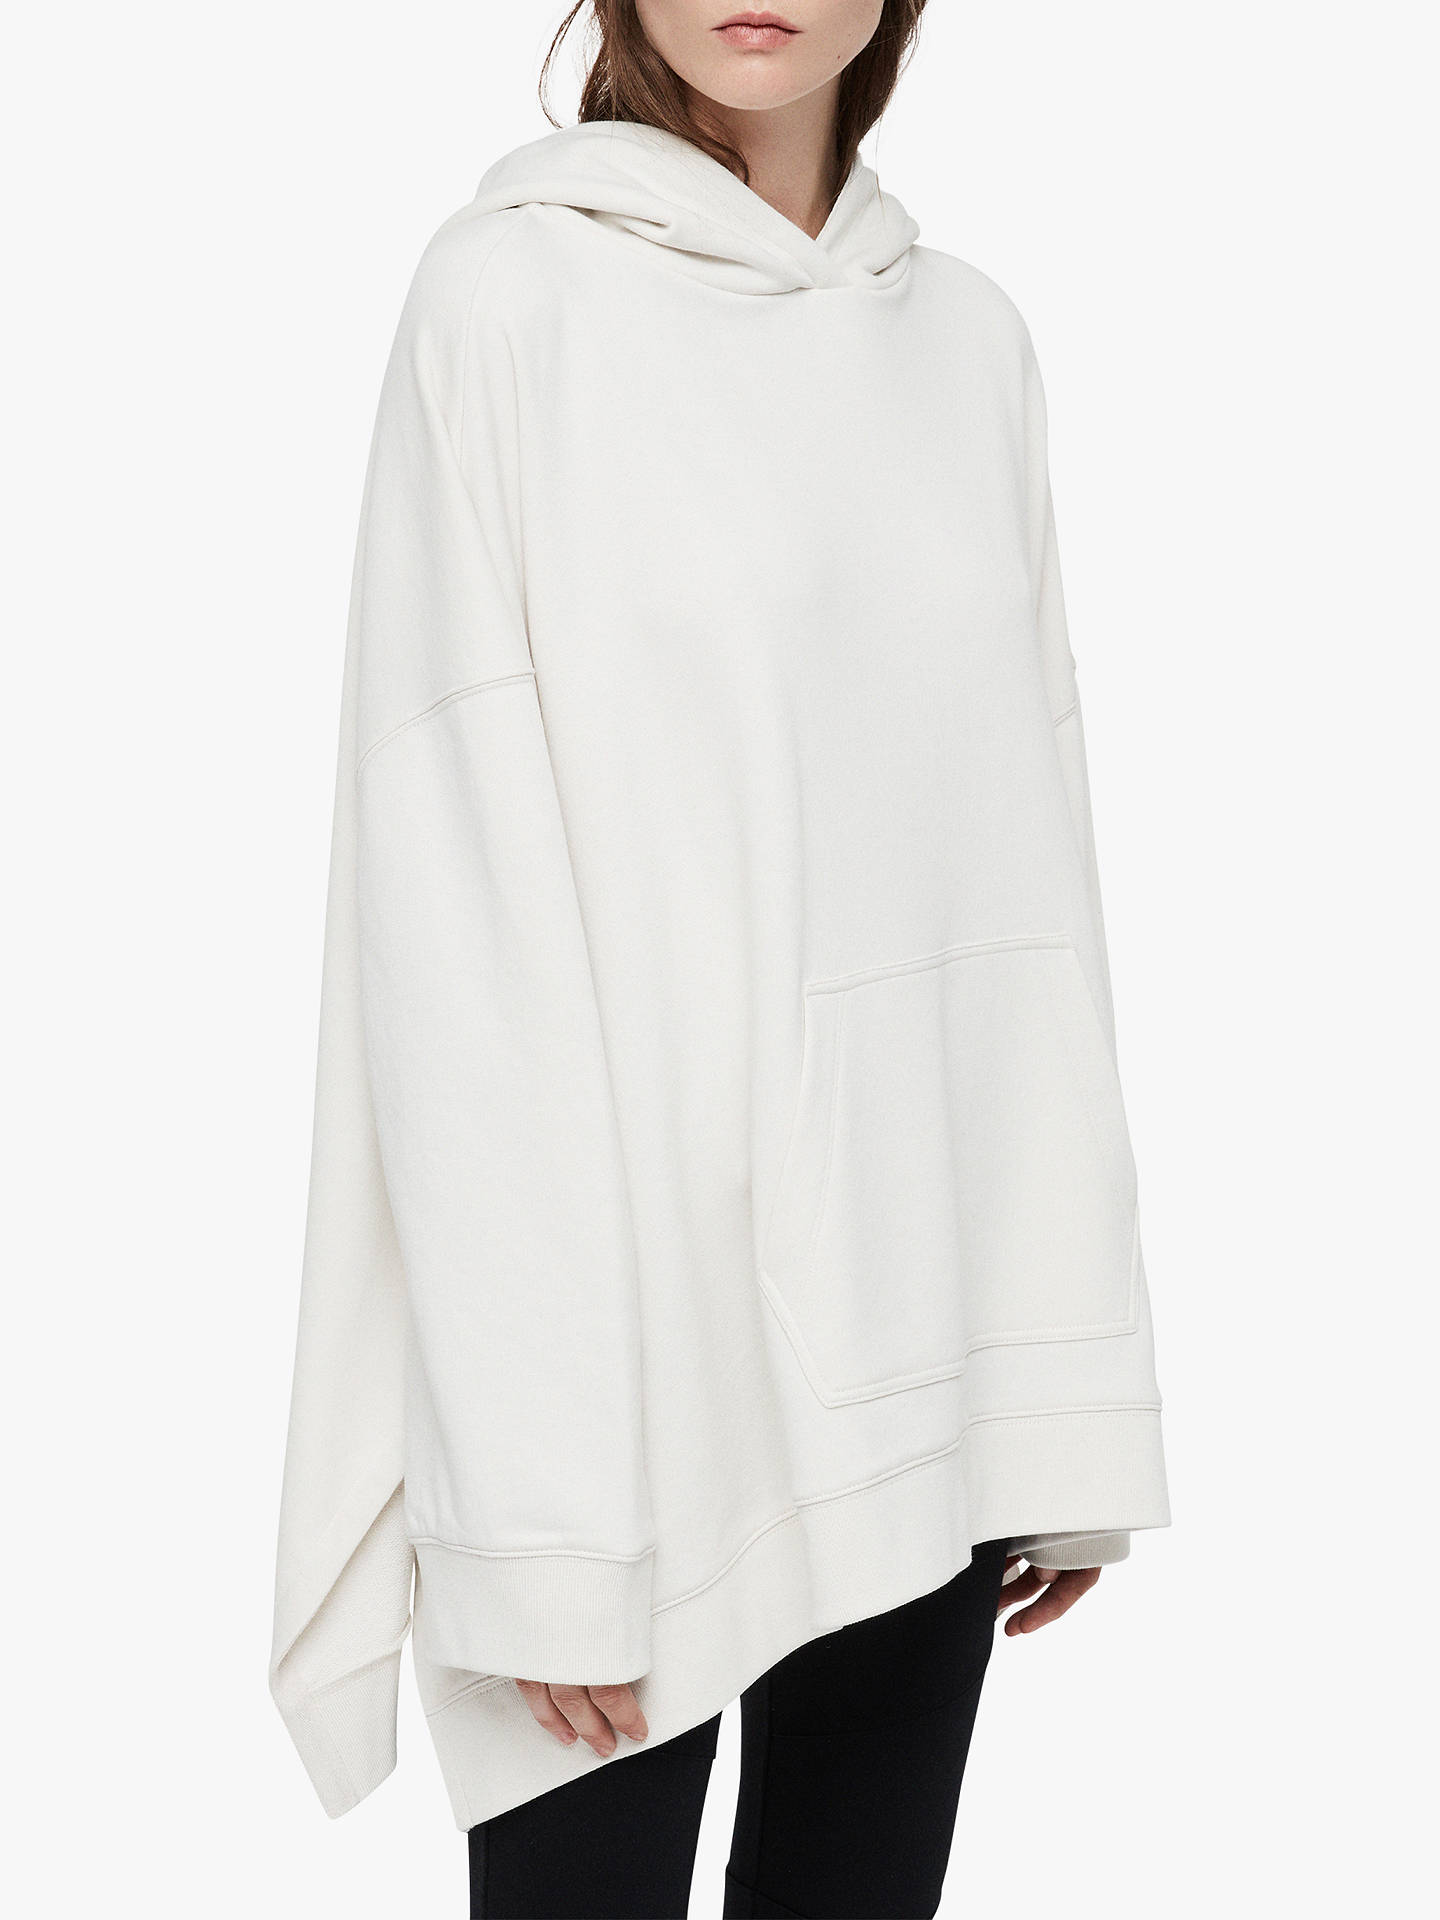 BuyAllSaints Harmon Oversized Hoodie, Ivory White, M-L Online at johnlewis.com